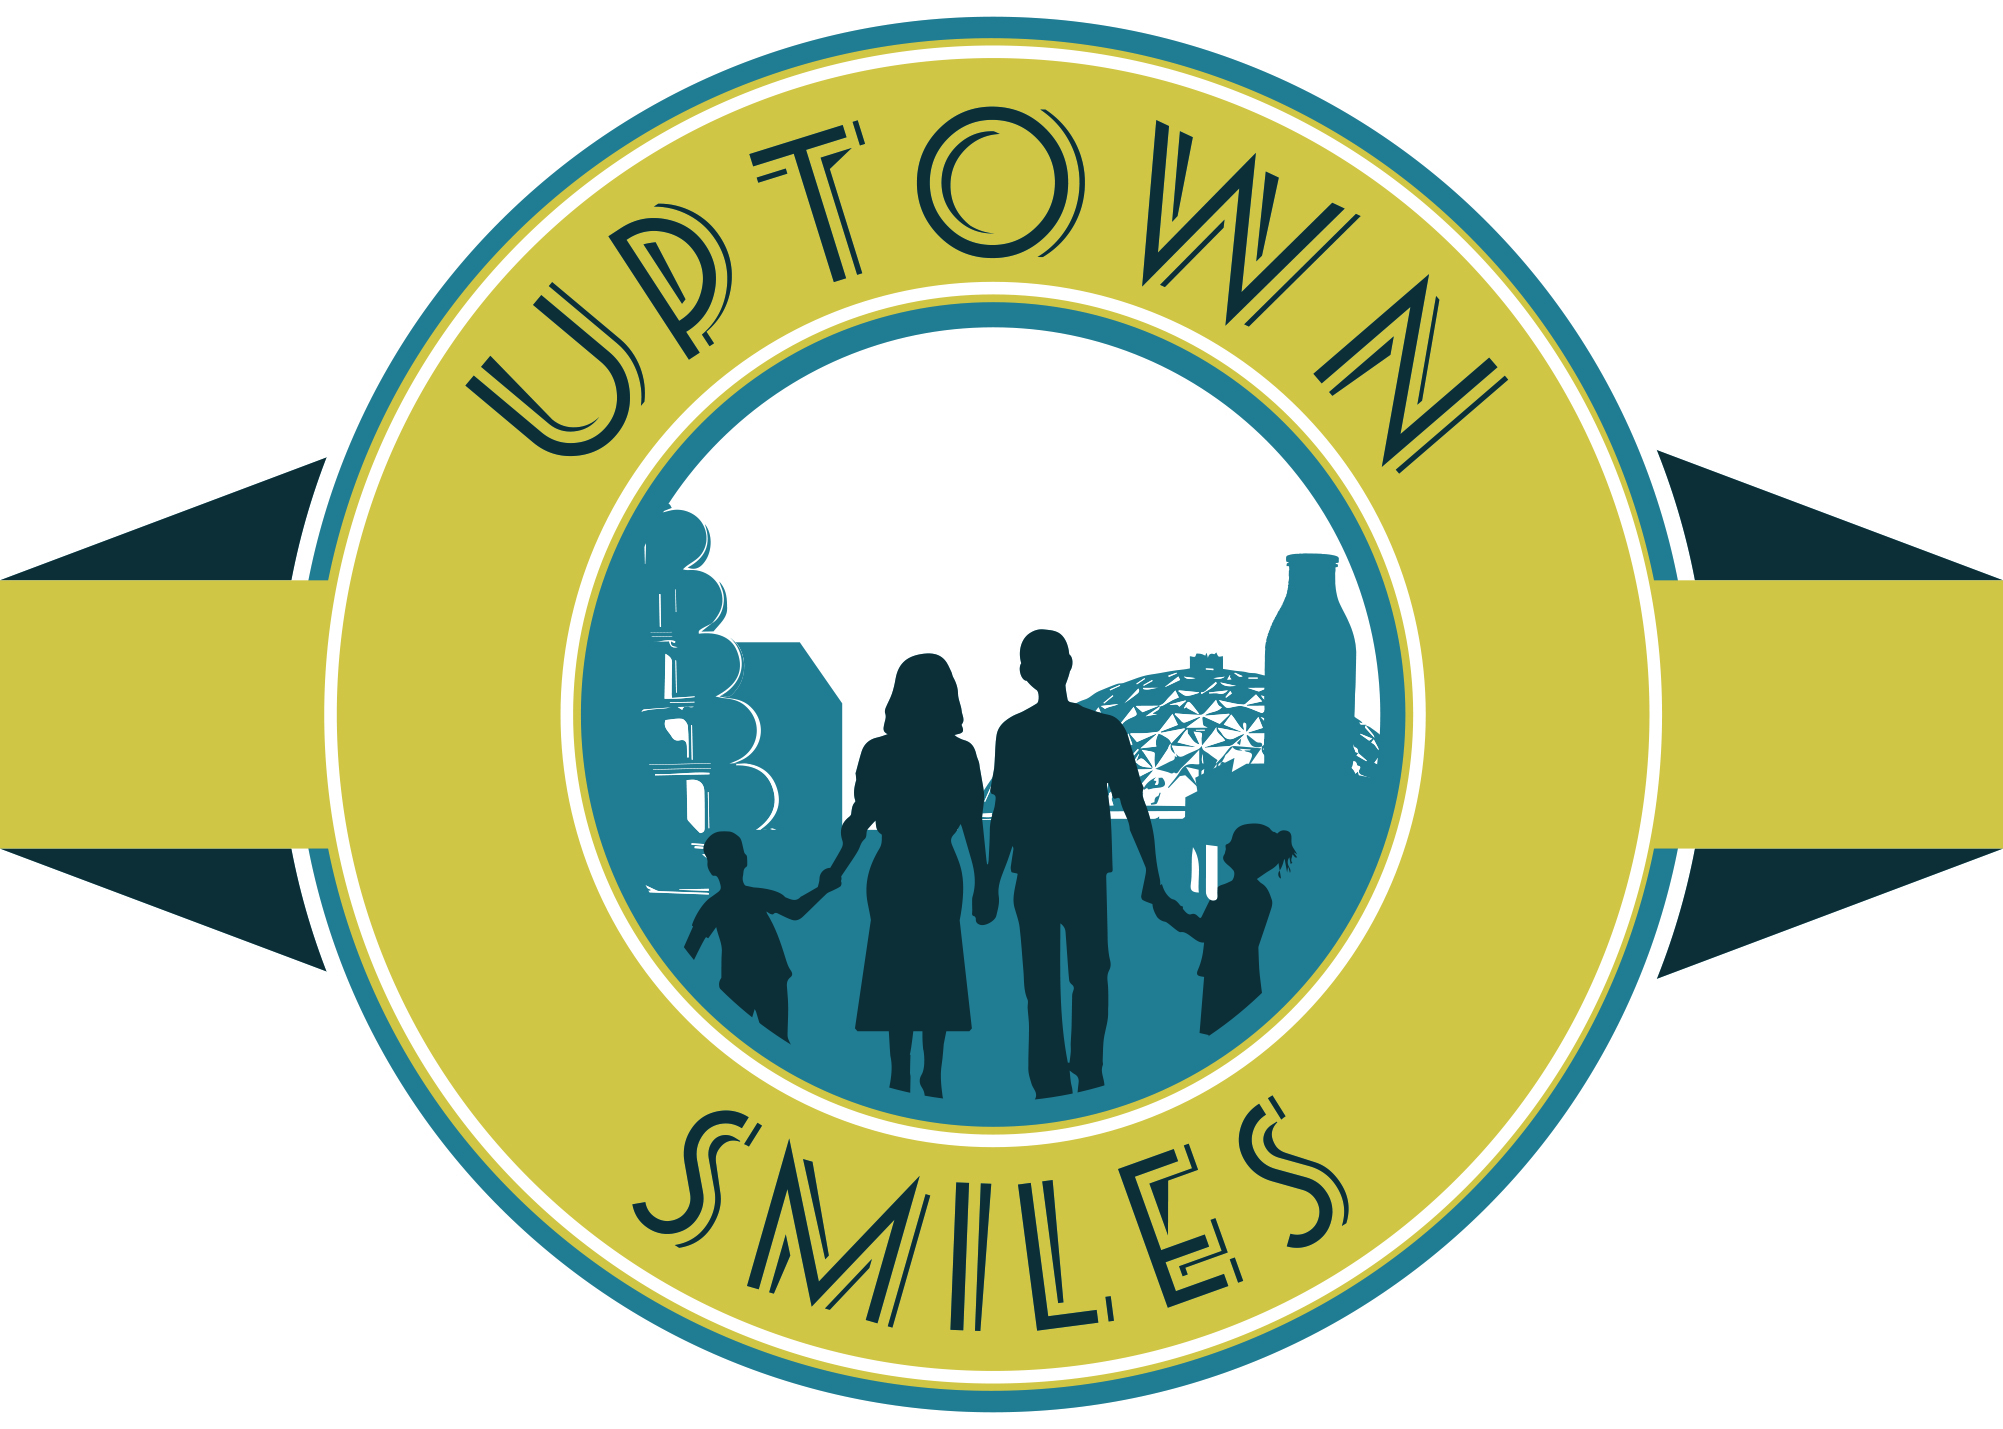 Uptown Smiles Official Logo.jpg